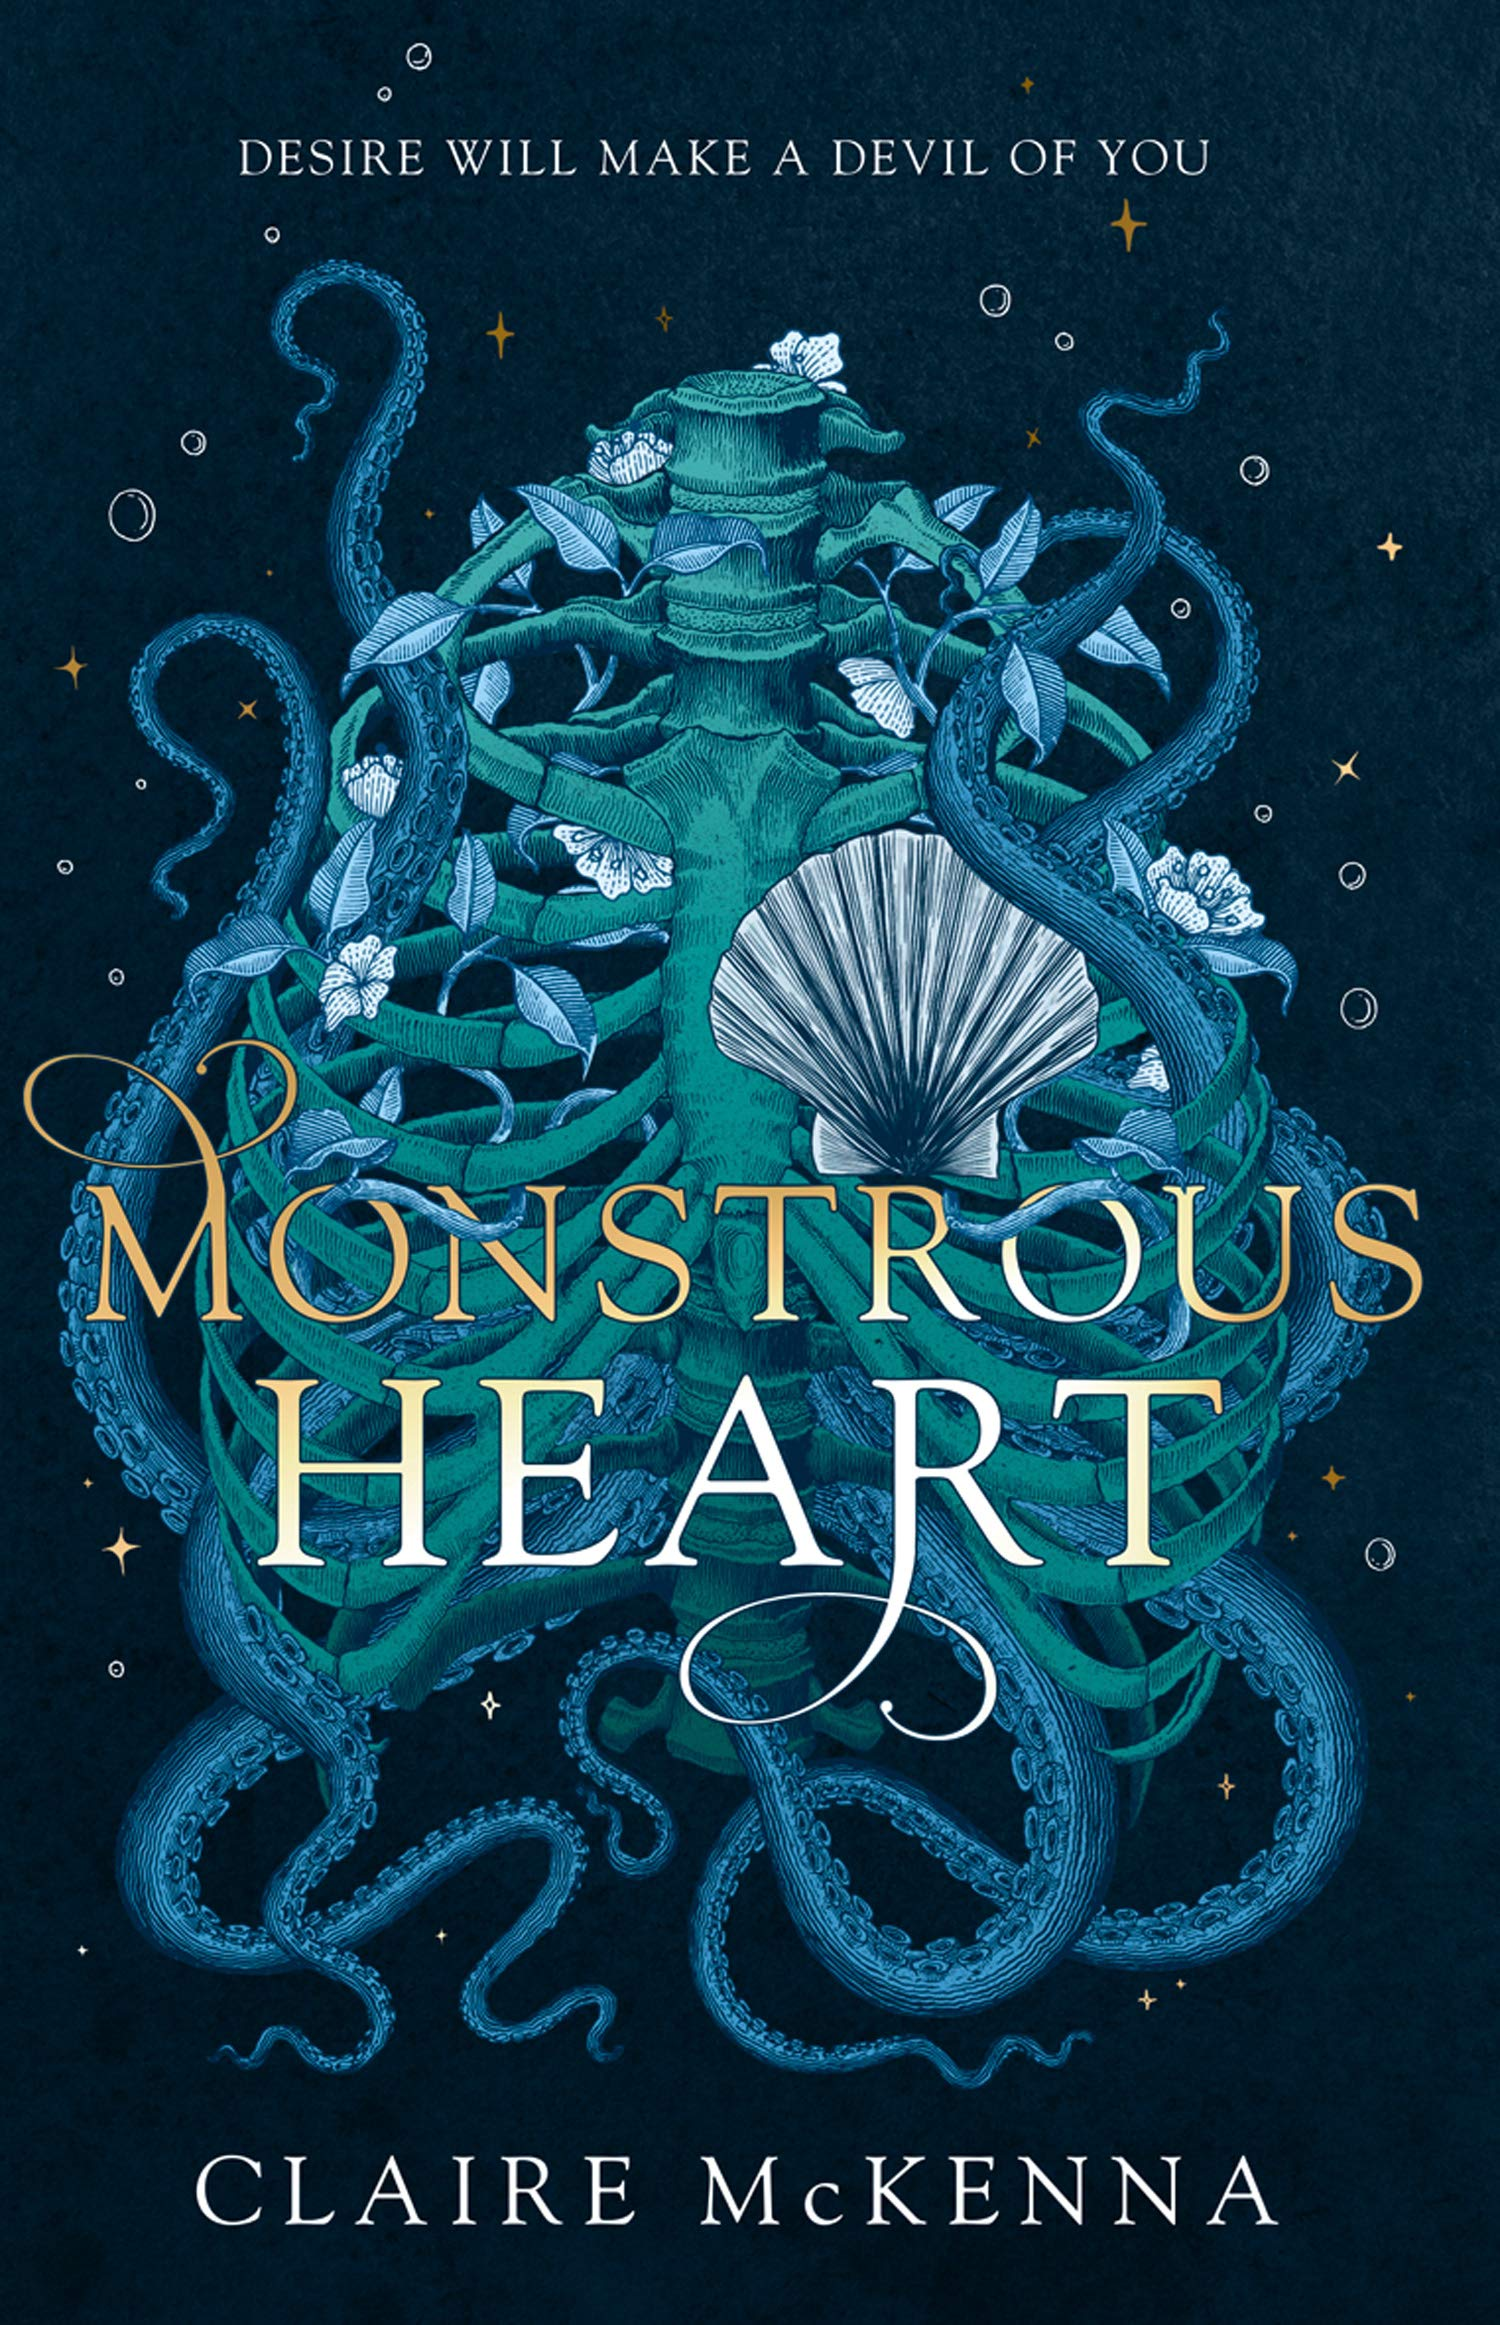 Monstrous Heart by Claire McKenna